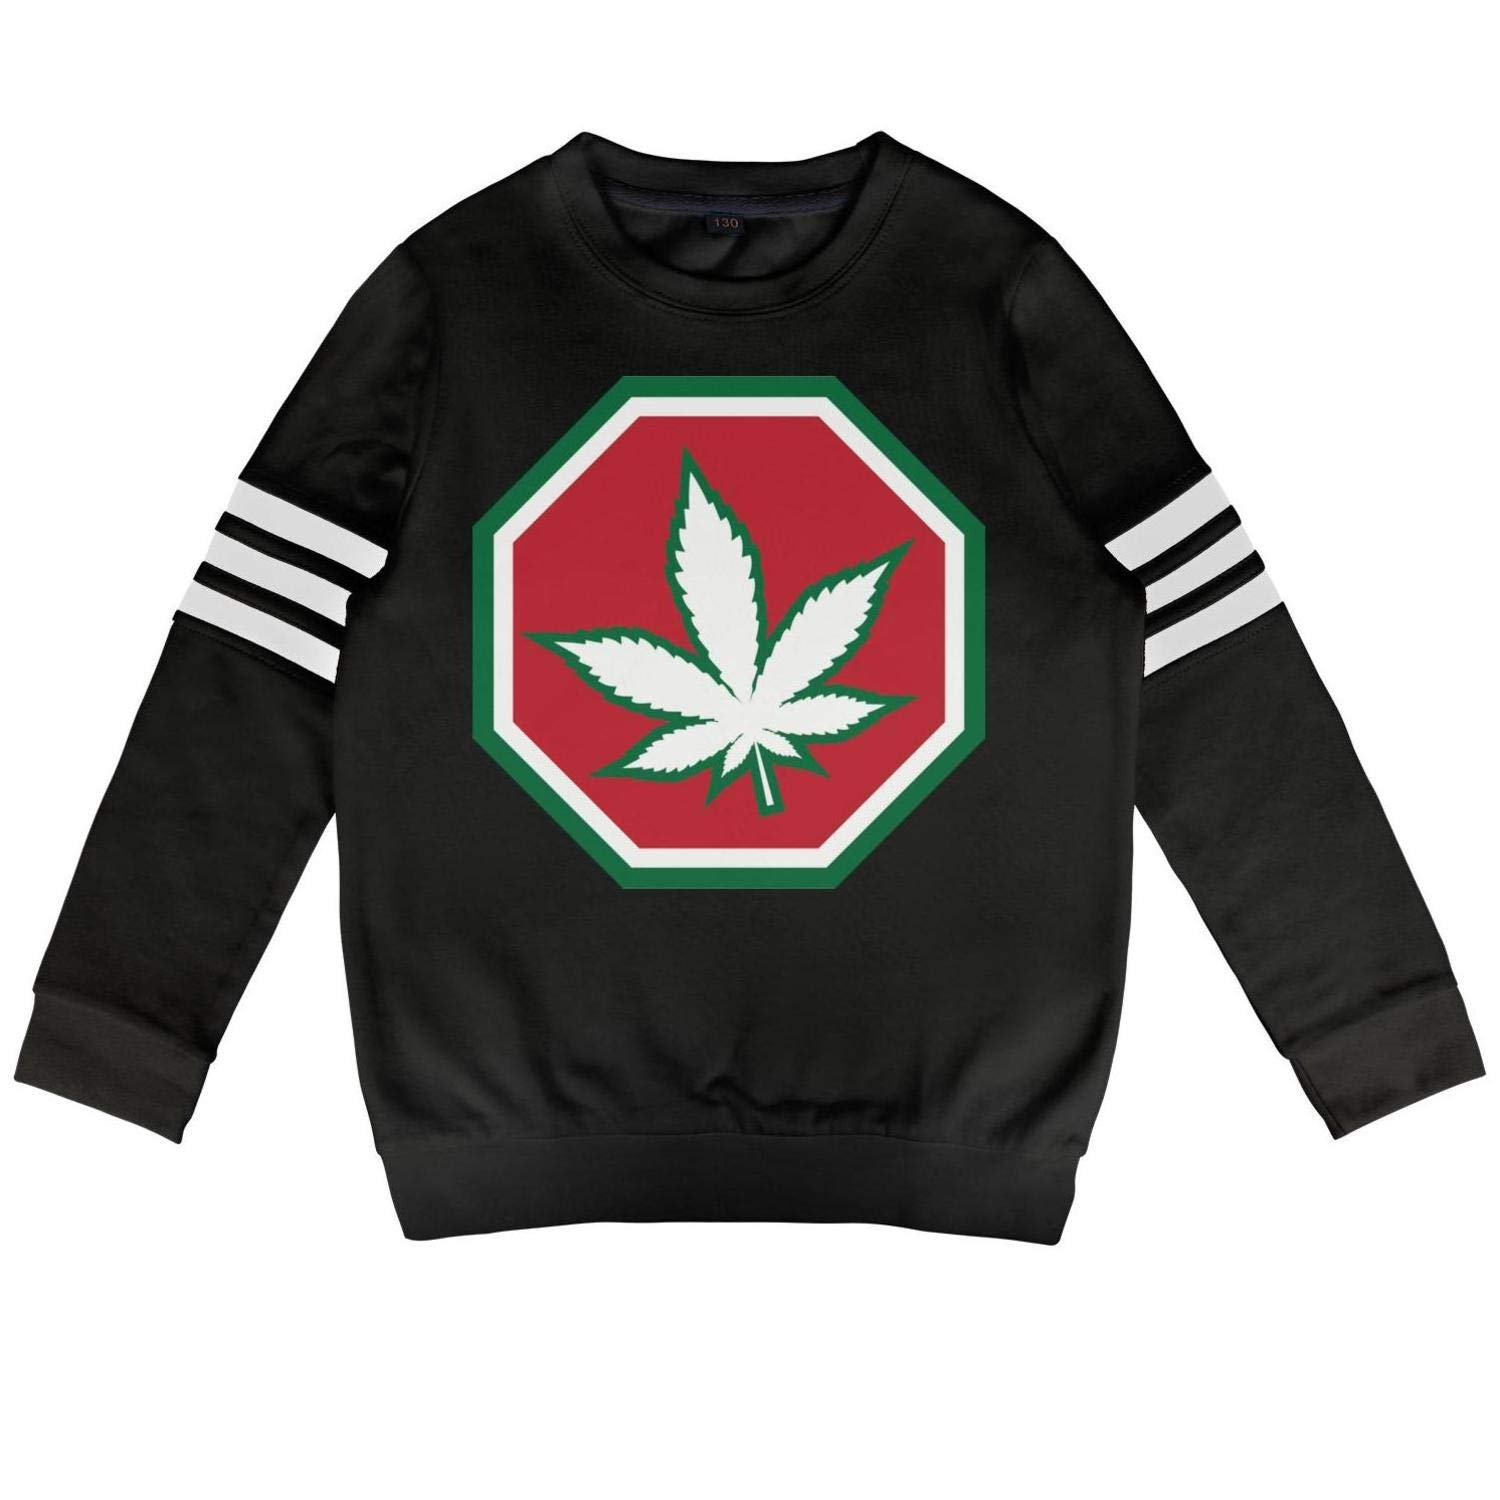 4corners Cannabis Hemp1 M(45) Daylight Toddler Crewneck Cotton Long Sleeve Sweatshirts Cannabis Warning Labels Hoody Sweatshirt for Boys and Girls